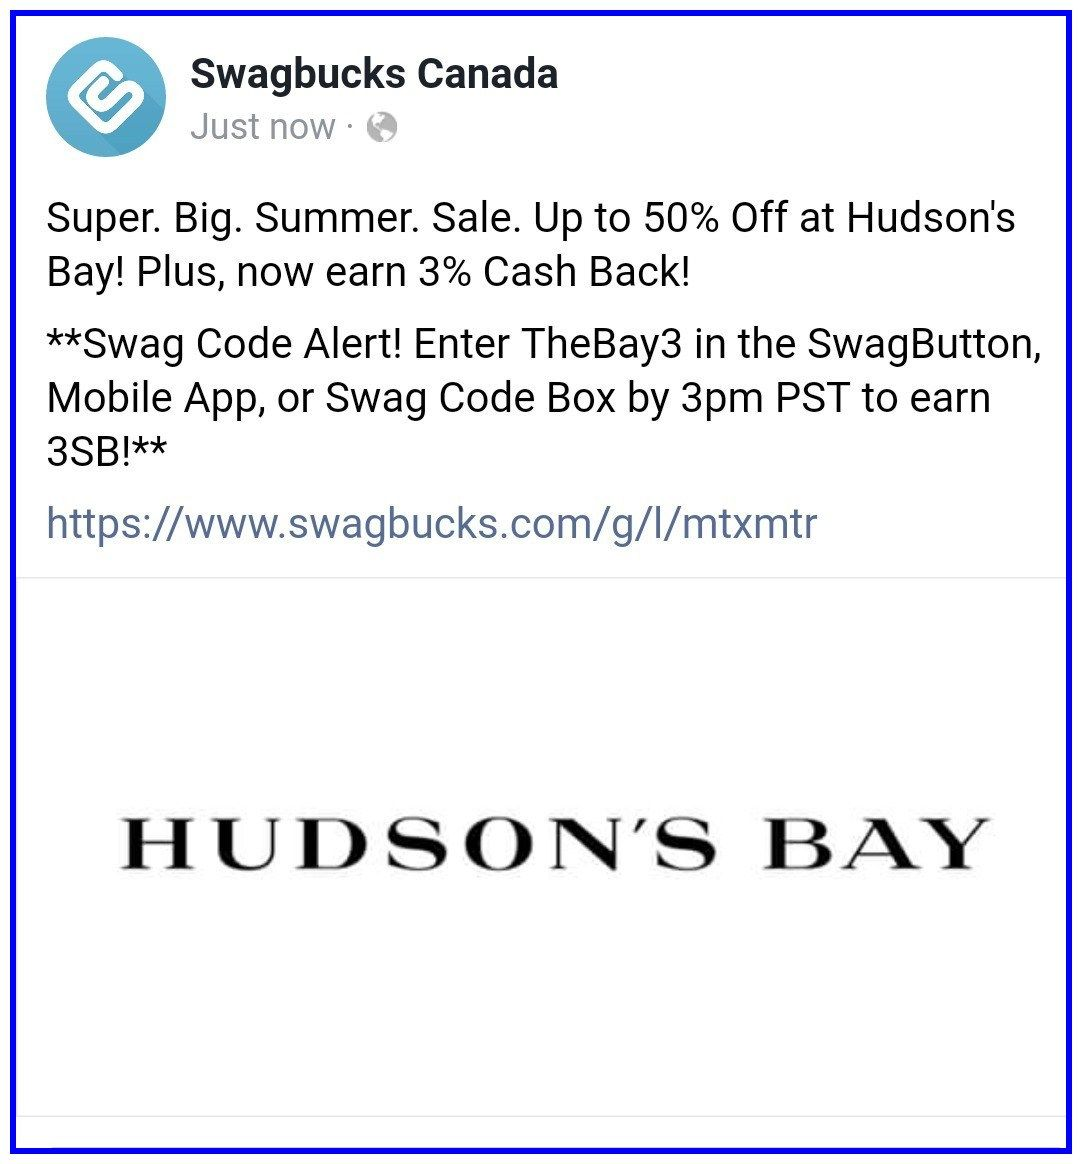 8 Pst To Aest swagbucks new #swagcode #3 #canada. please enter thebay3 at